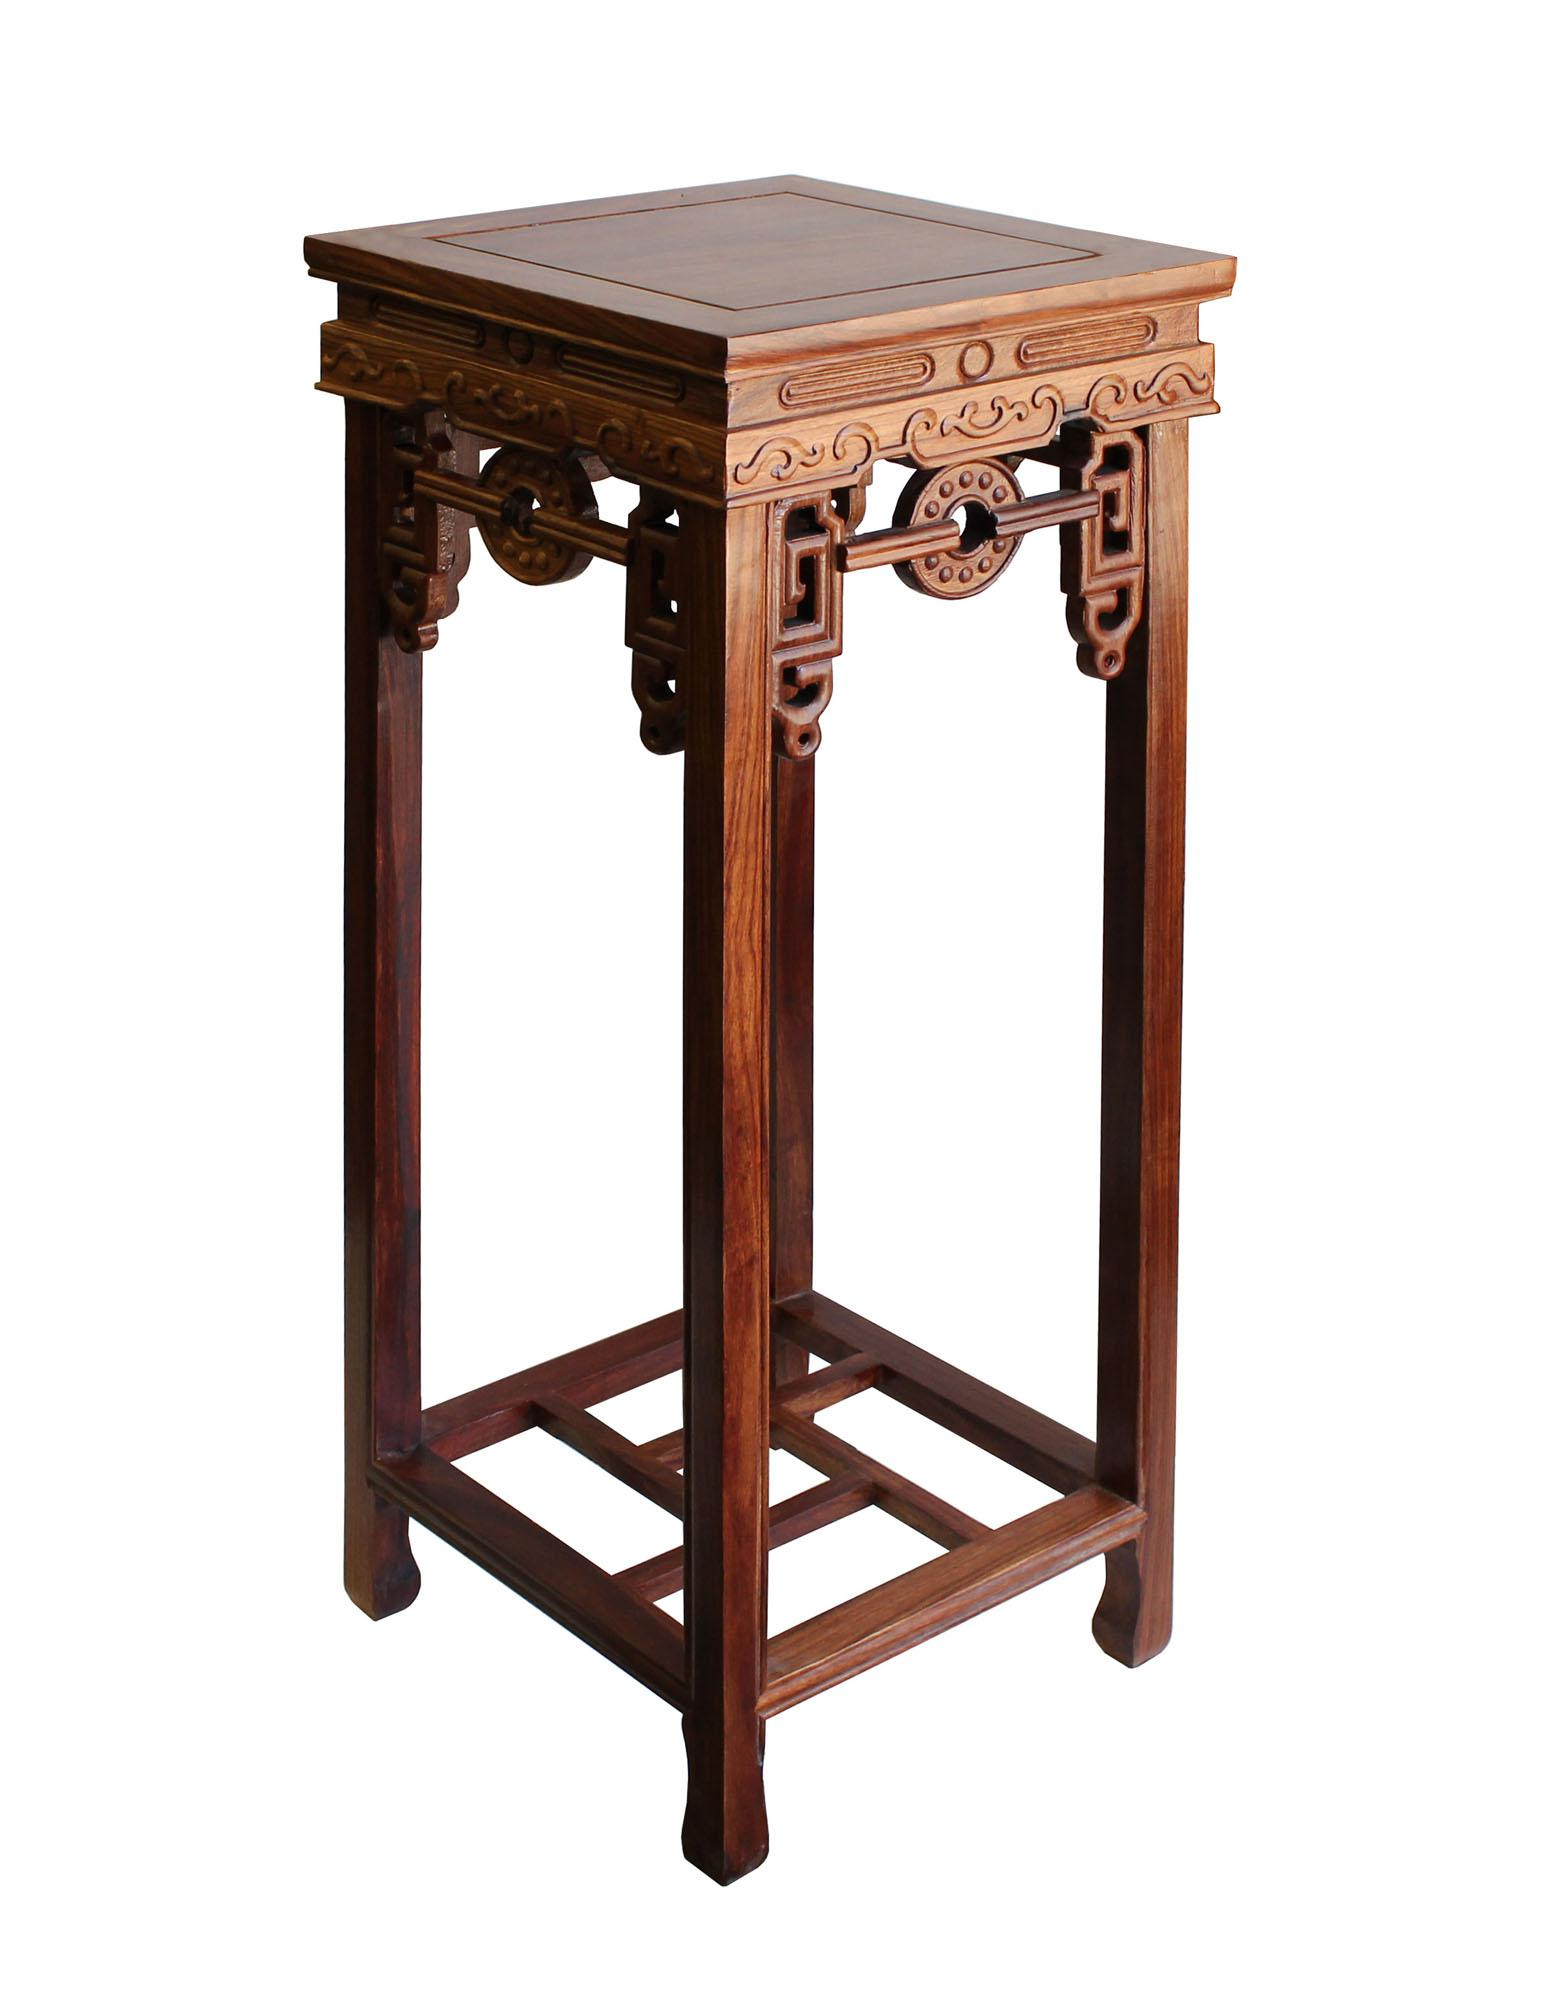 Chinese Medium Brown Wood Square Pedestal Plant Stand Table   Image 3 Of 6